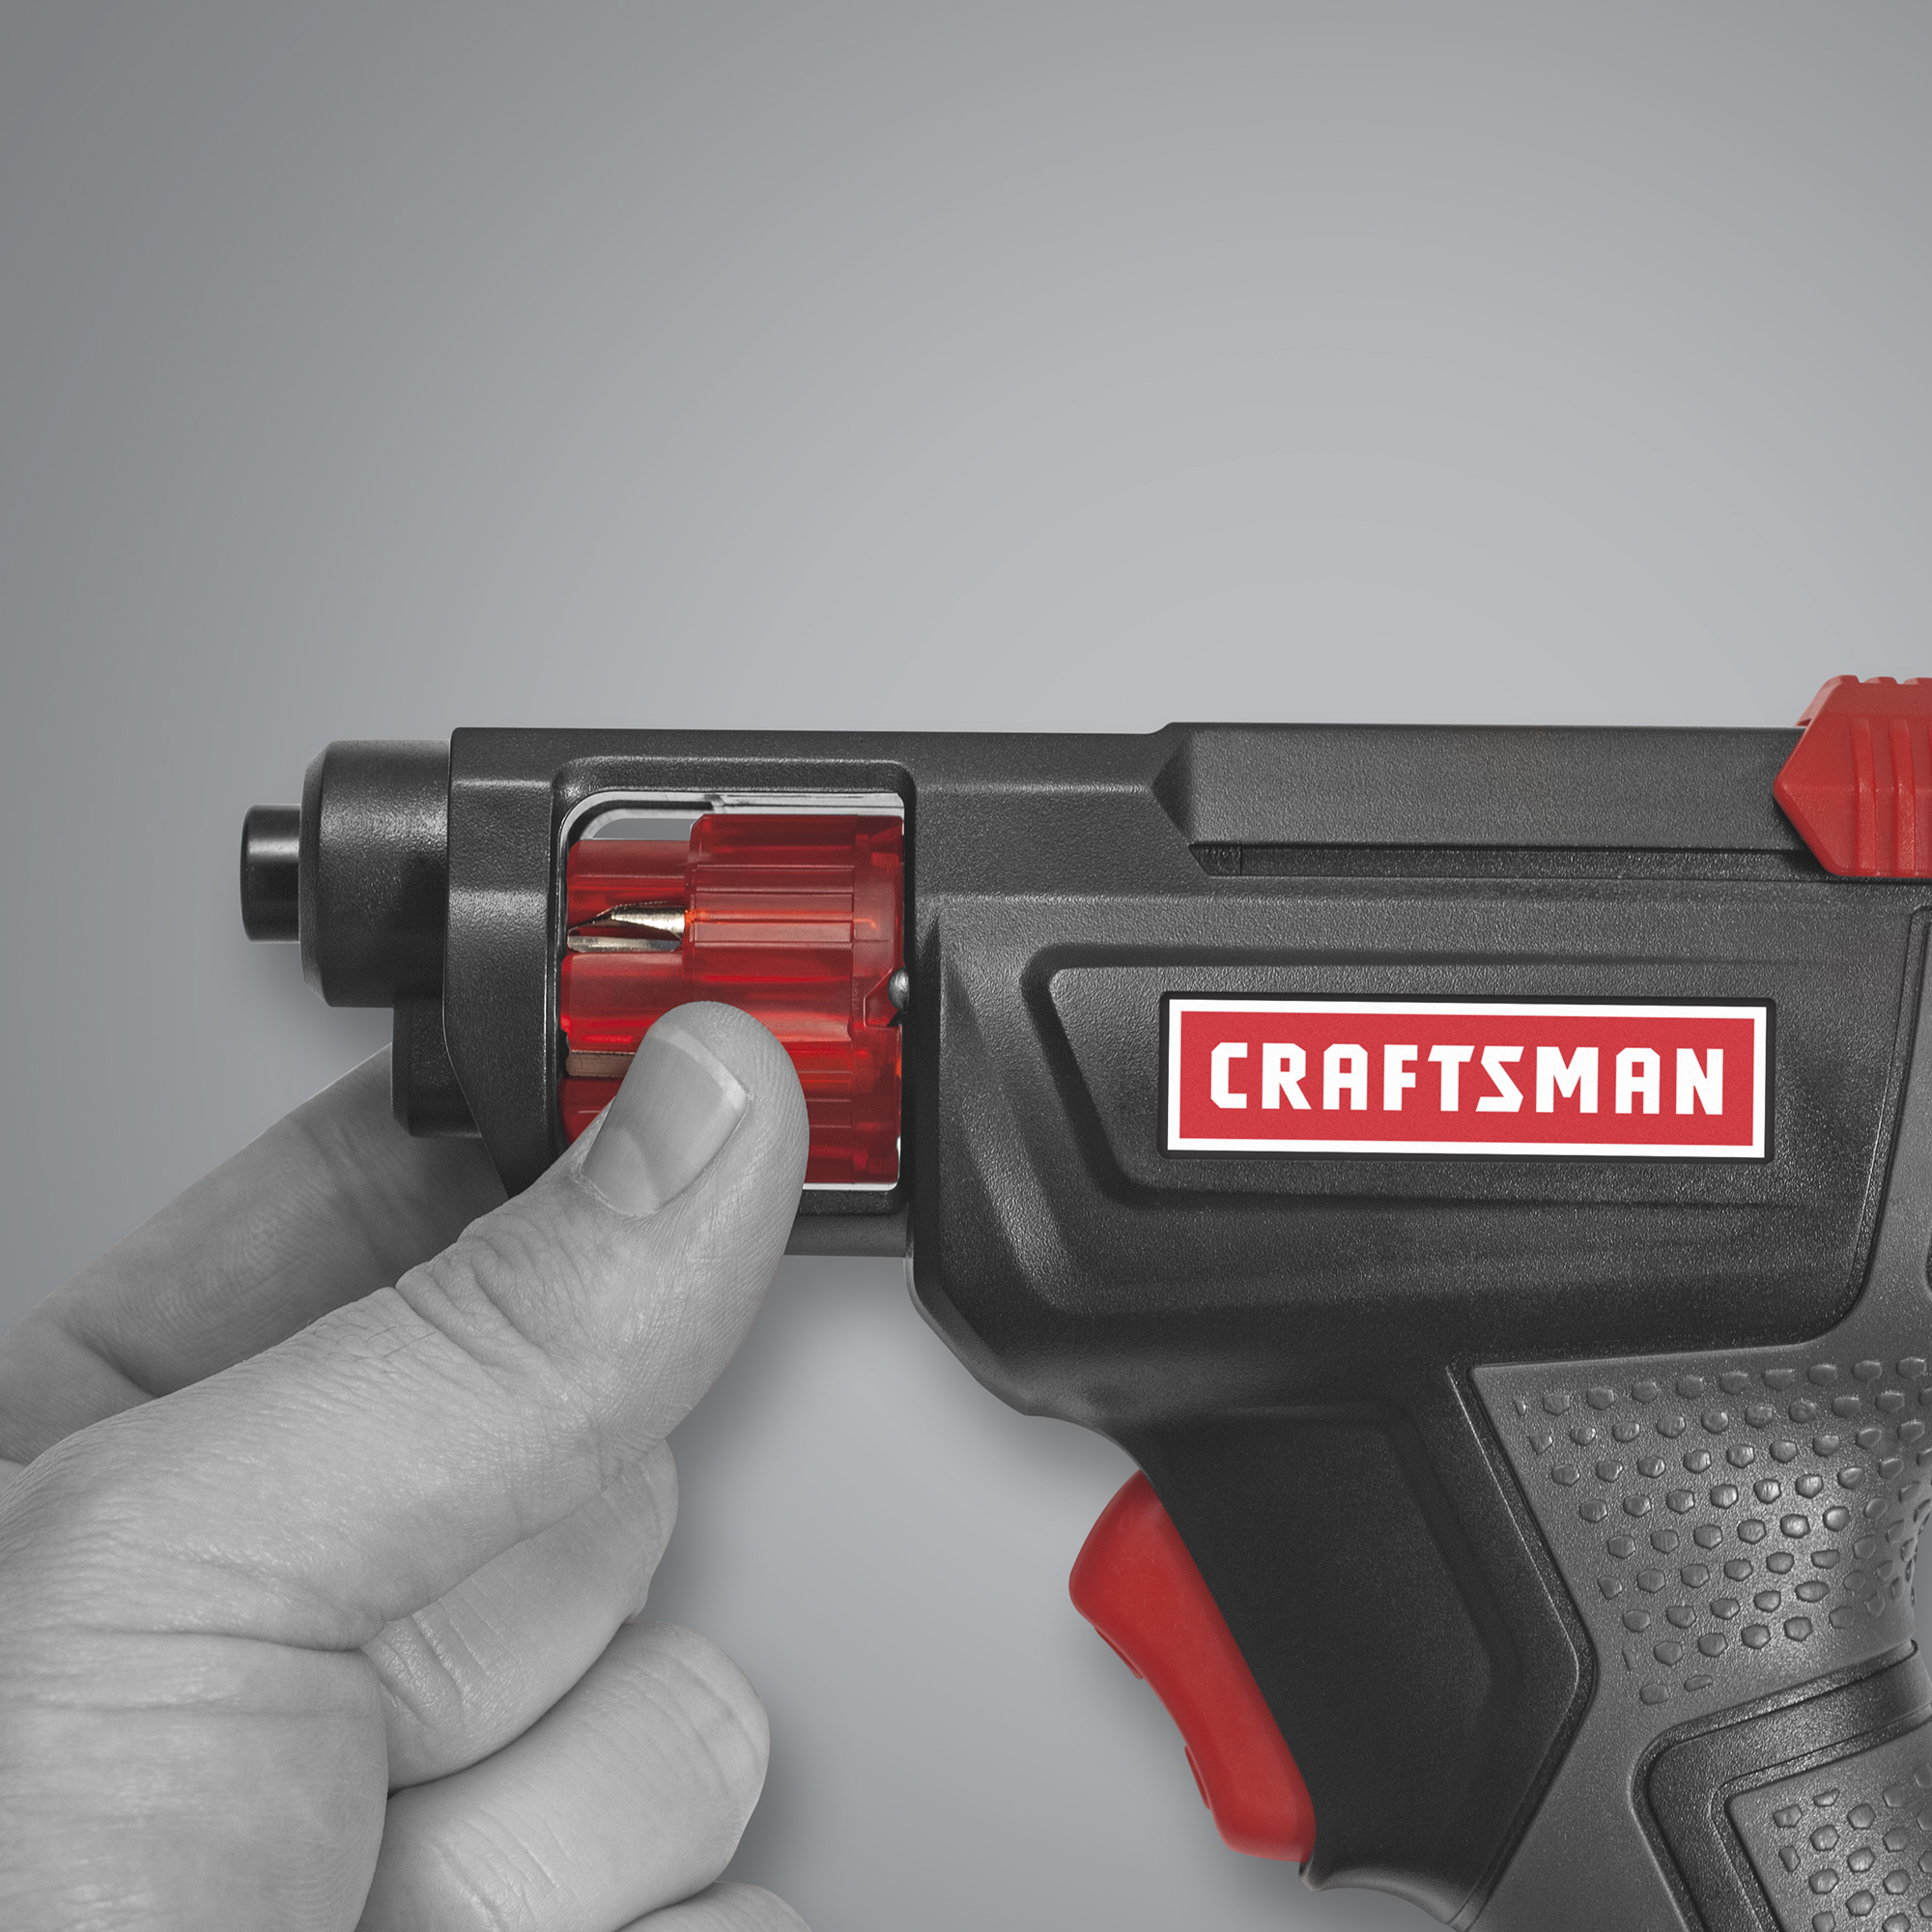 Craftsman 4V Slide Screwdriver